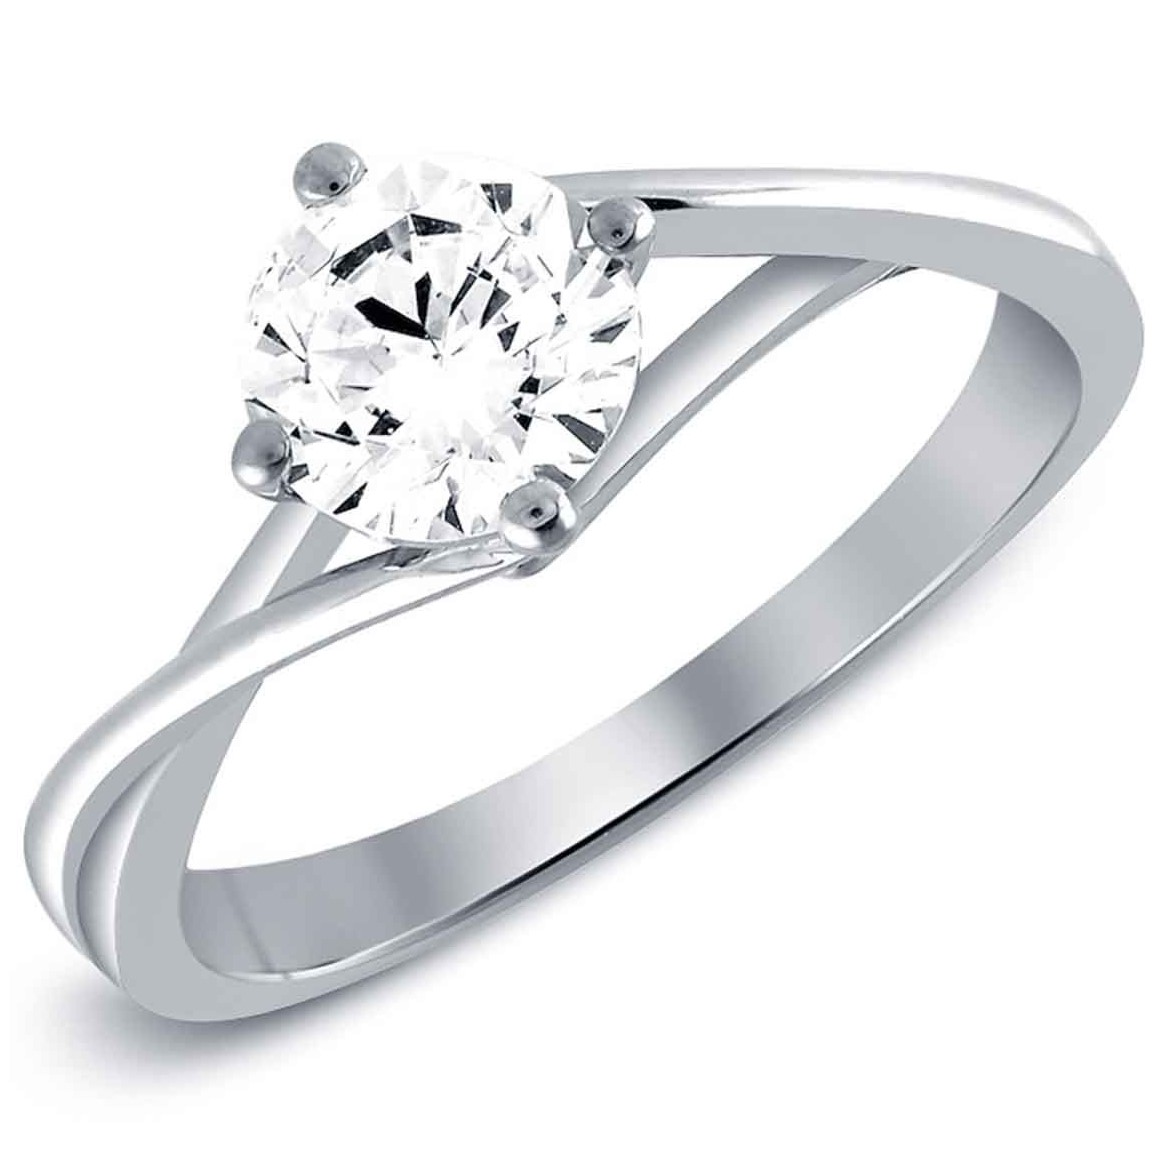 Twisted Plain Shank Engagement Ring in 18K White Gold